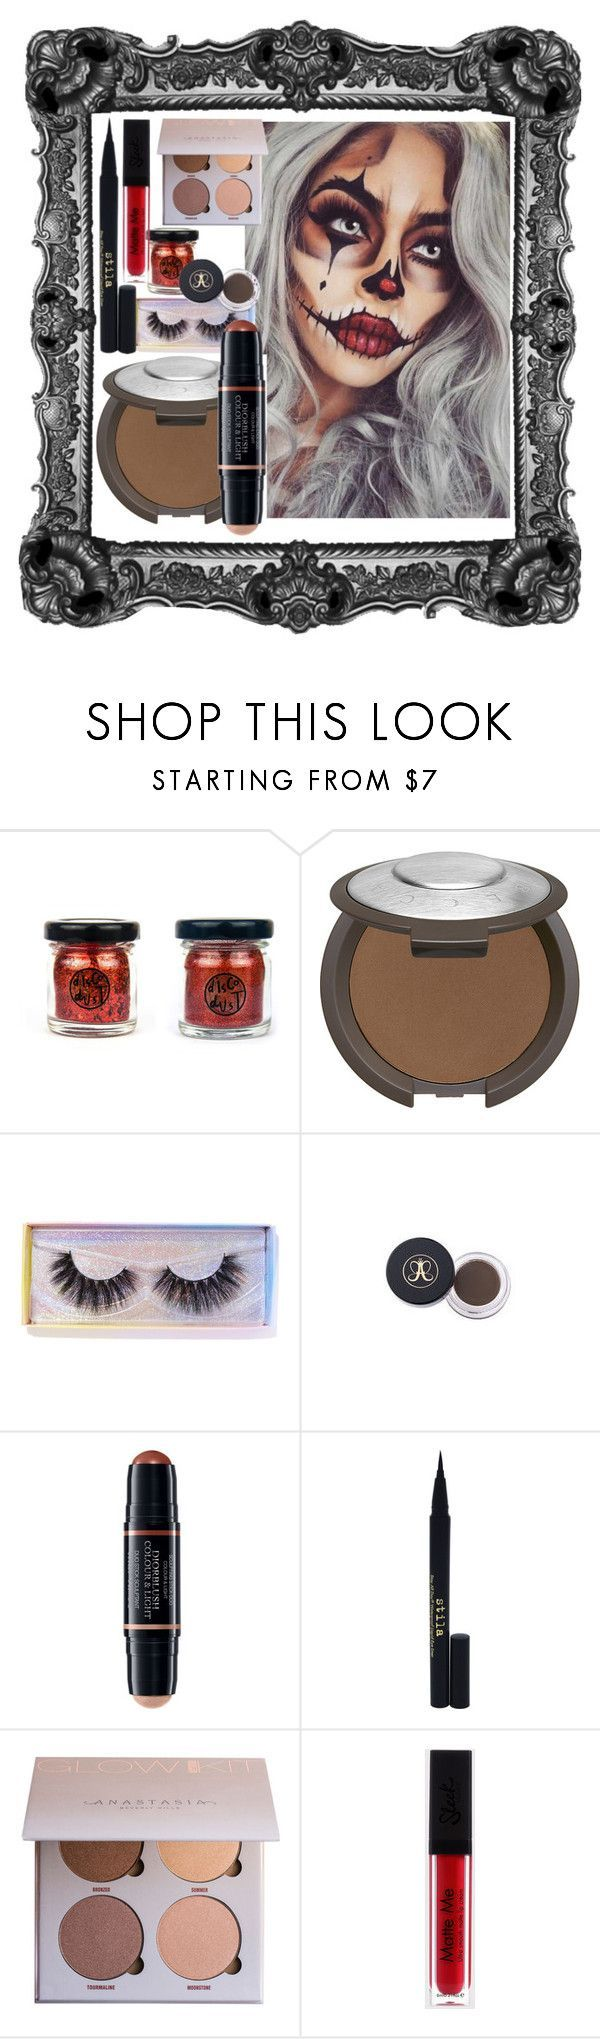 Scarecrow makeup #scarecrowmakeup Scarecrow makeup by hannahwibb ❤ liked on Polyvore featuring beauty, Disco Dust London, Becca, Featherella, Christian Dior and Stila #scarecrowmakeup